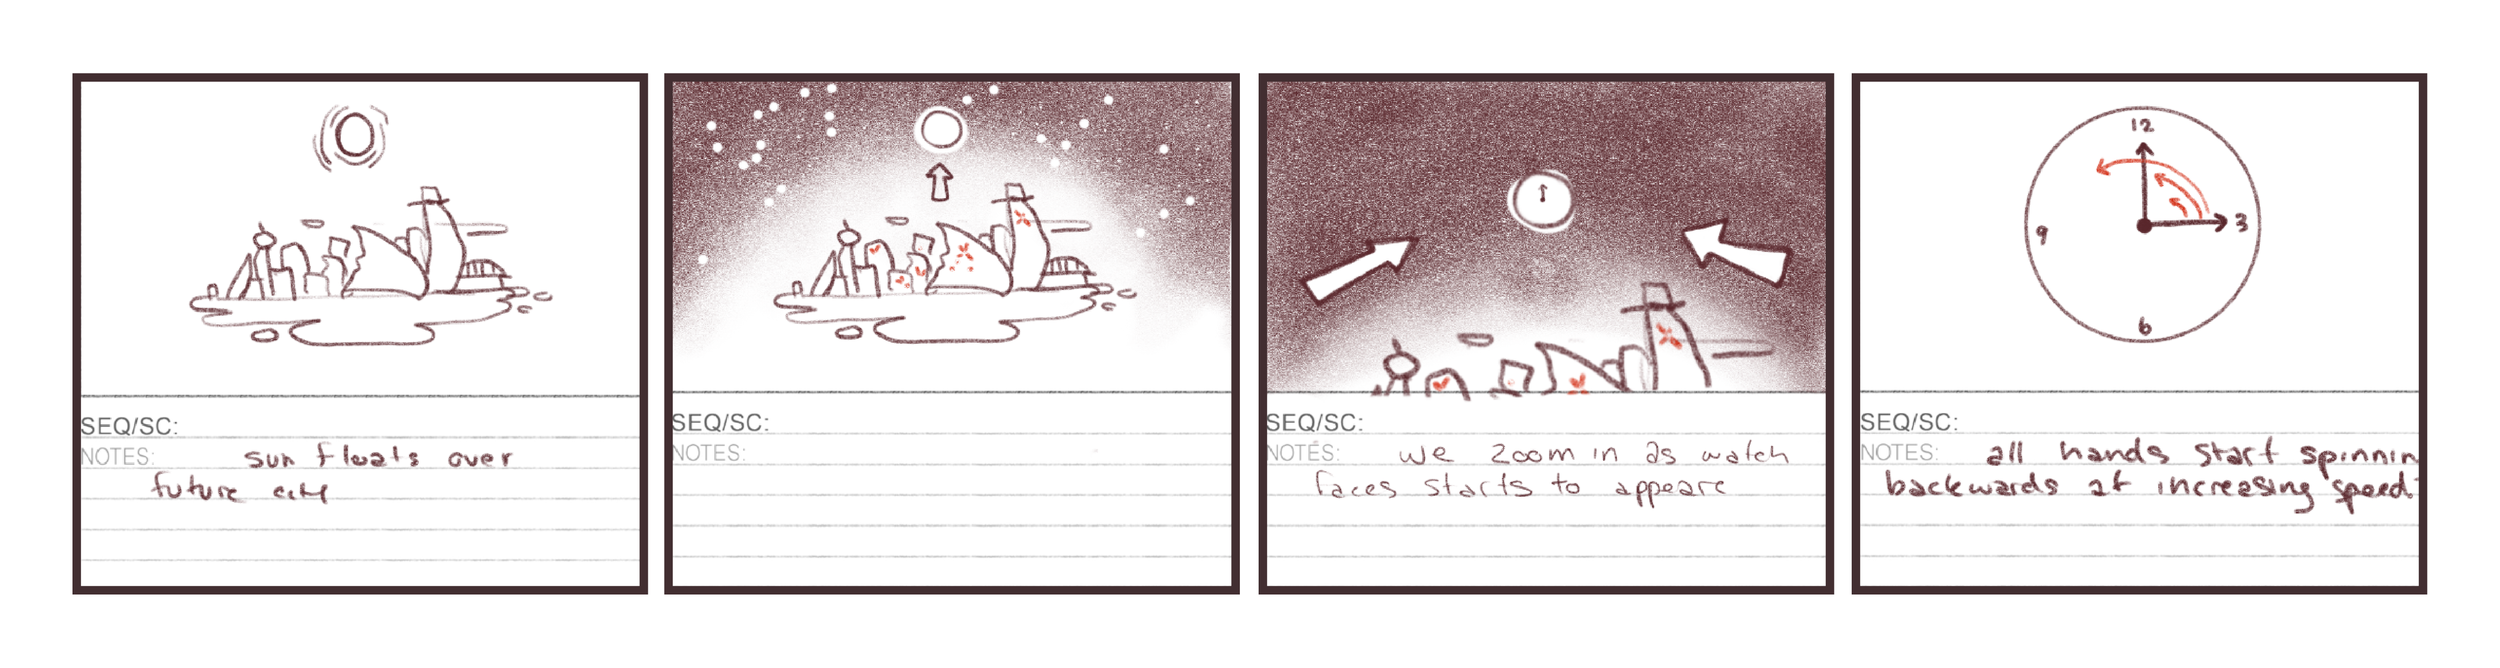 emergence_internet_storyboards-01.png